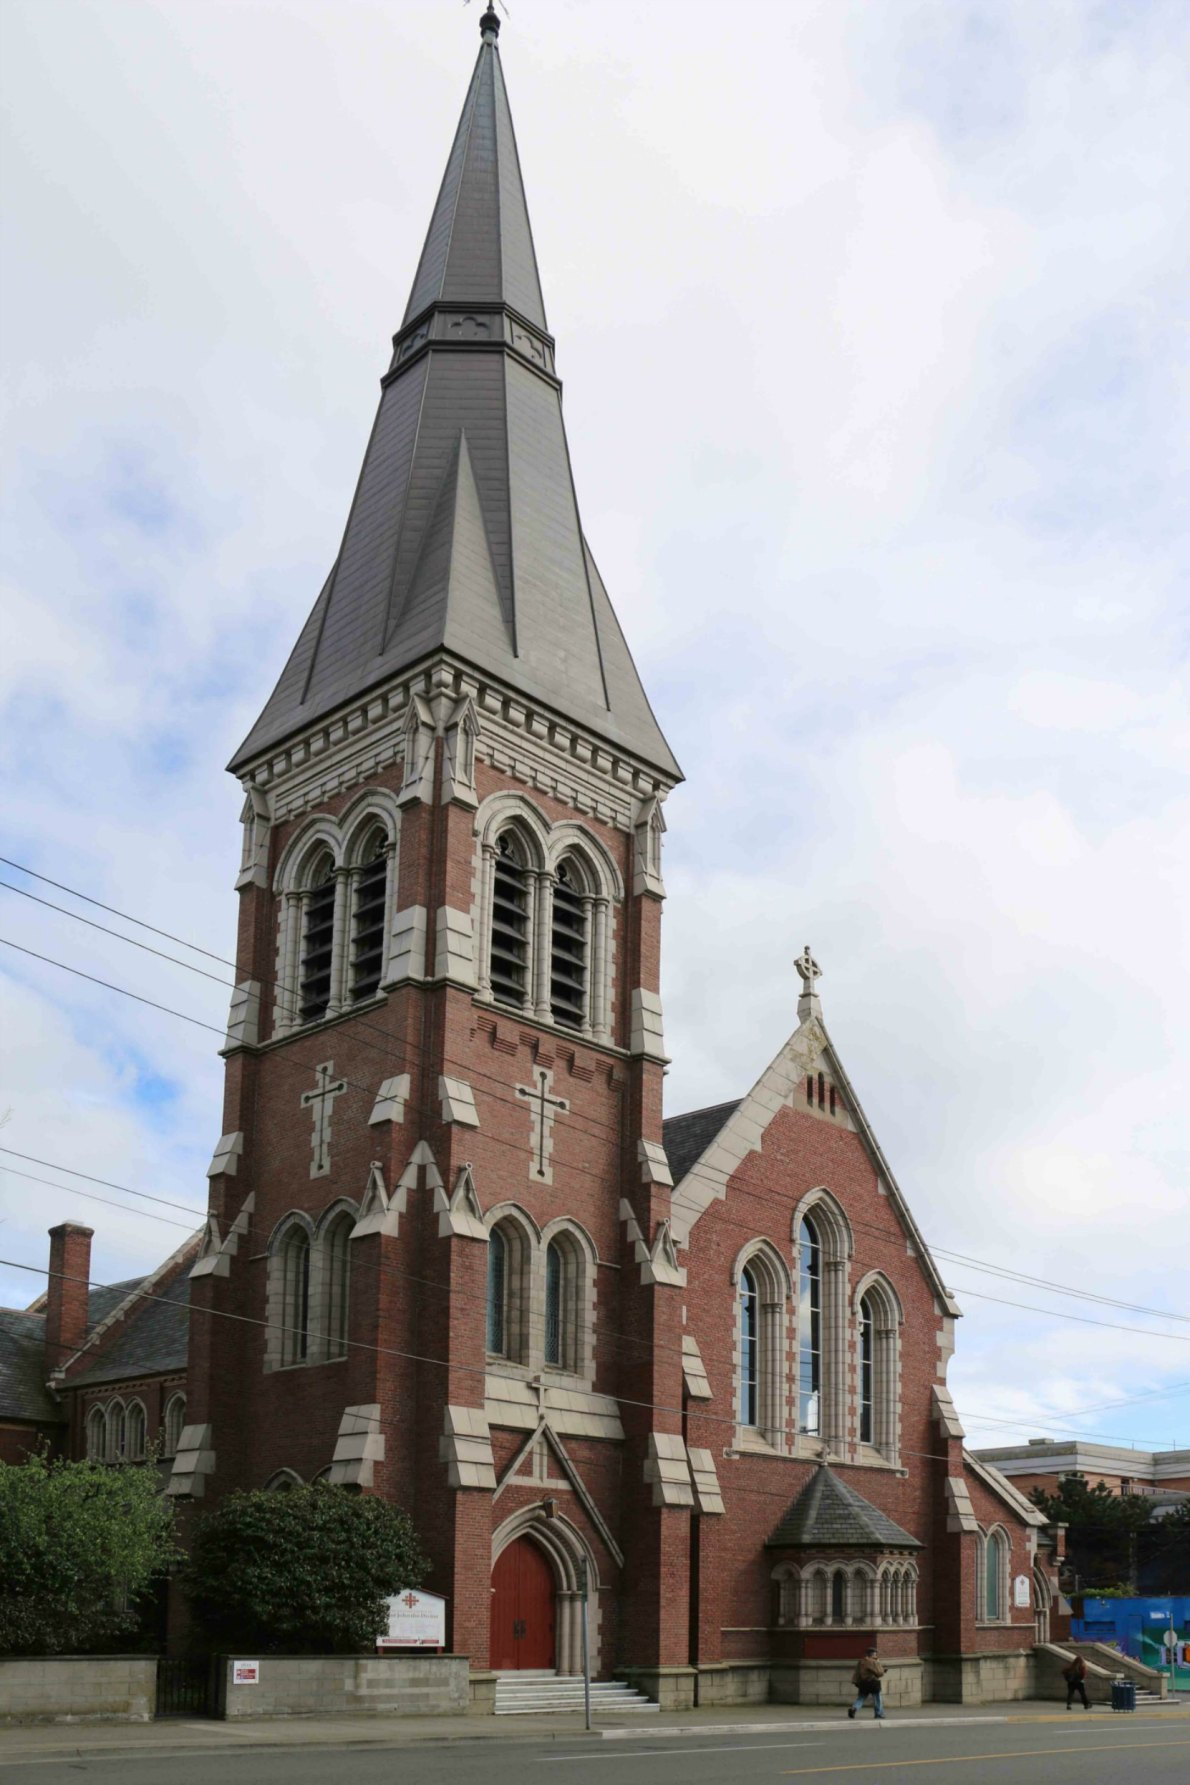 St. John the Divine Anglican Church, 1611 Quadra Street. Built in 1912 by architect William Ridgway Wilson for the Anglican Church of Canada.